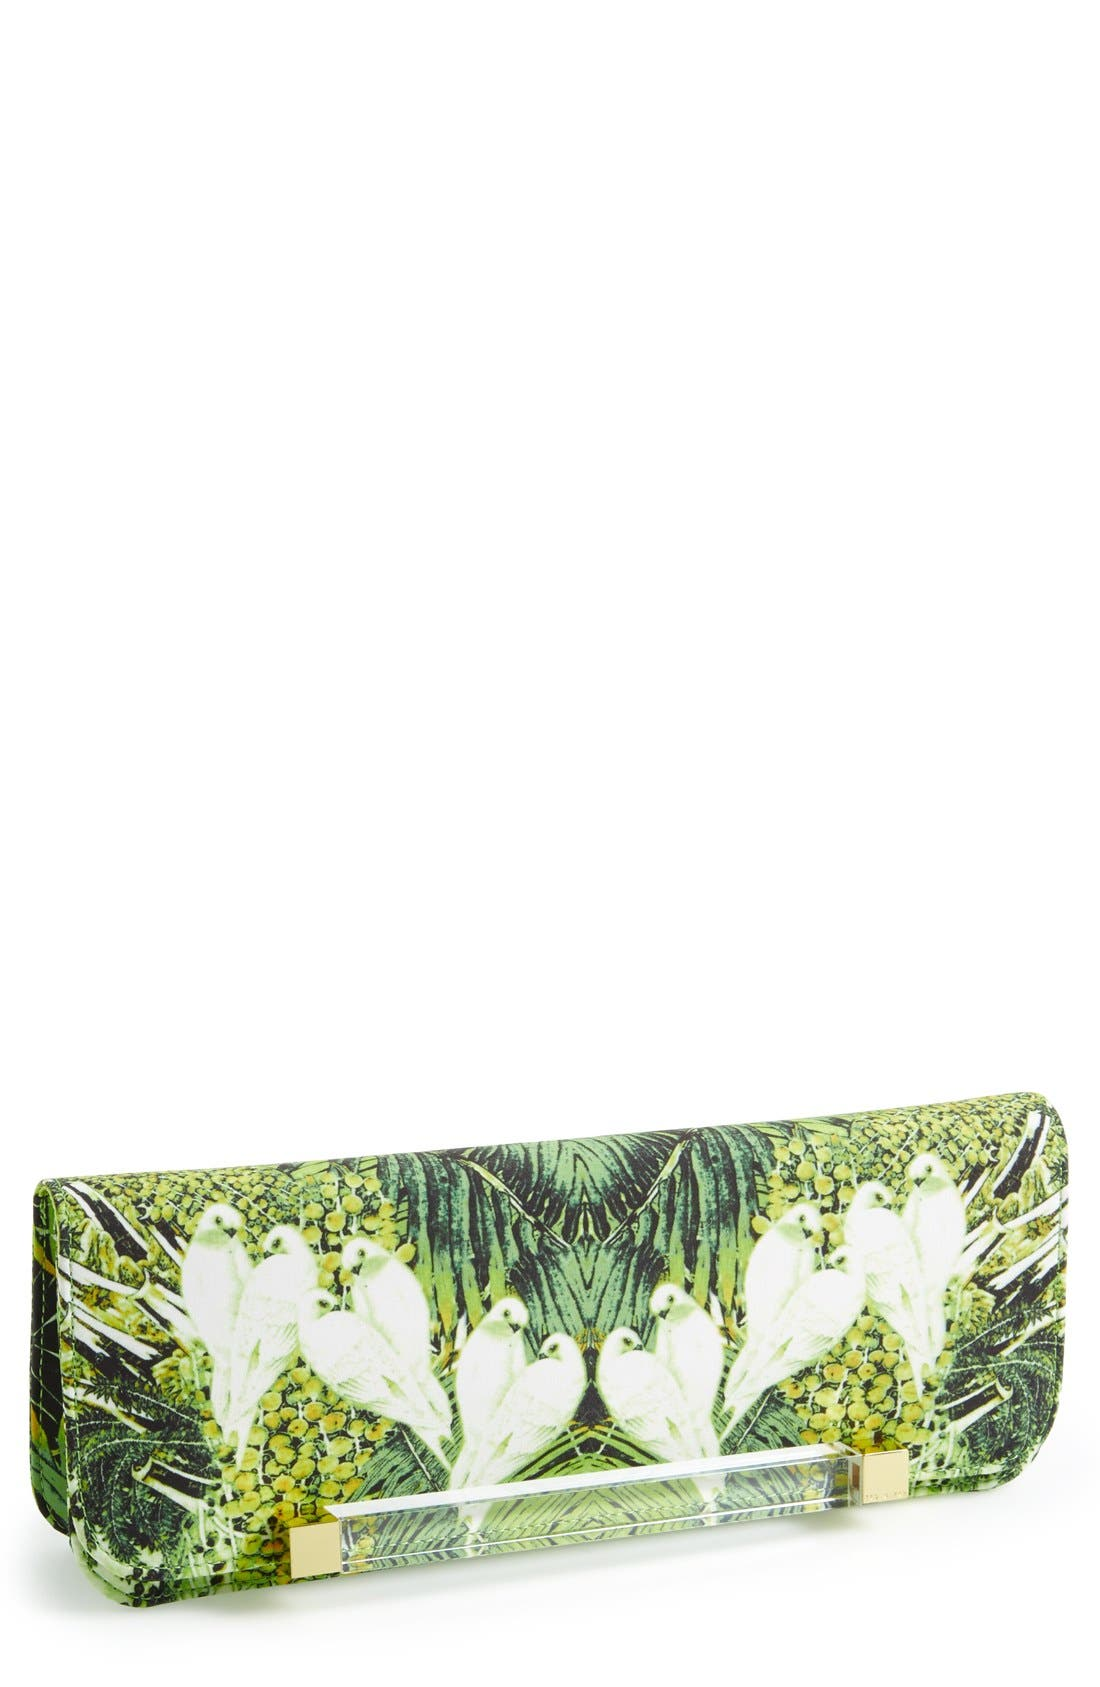 TED BAKER LONDON, 'Tropical Dove' Clutch, Main thumbnail 1, color, 300